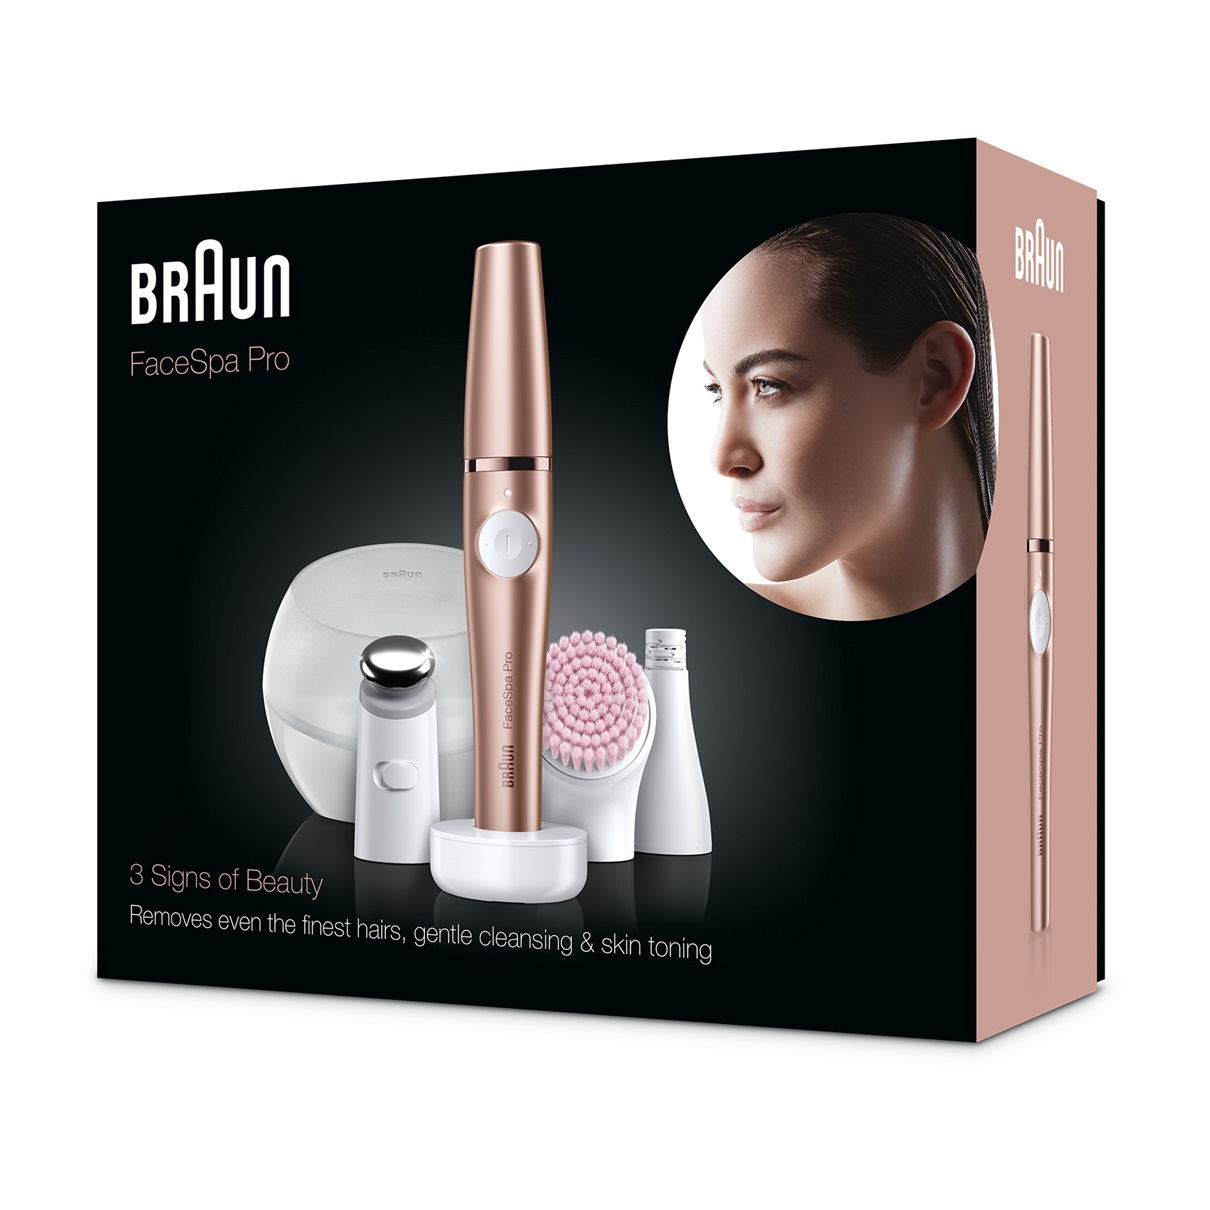 Braun FaceSpa Pro 921 - packaging